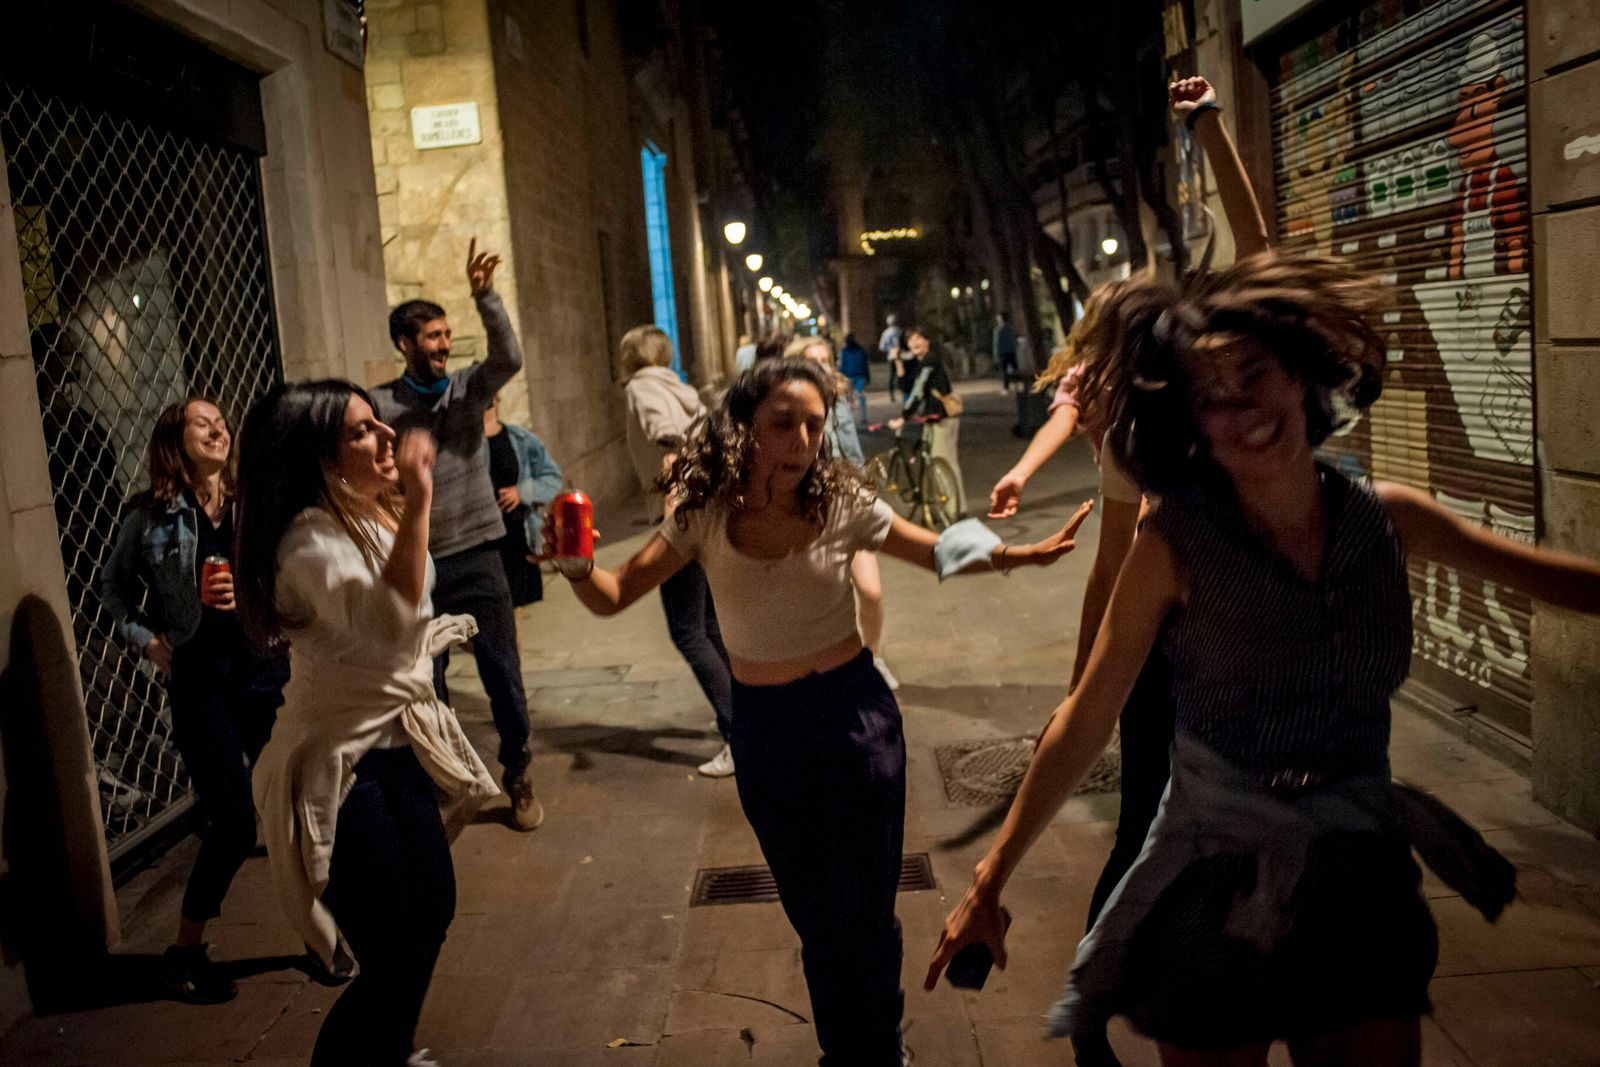 May 9, 2021, Barcelona, Catalonia, Spain: People make party in Barcelona downrown streets the night from Saturday to Su